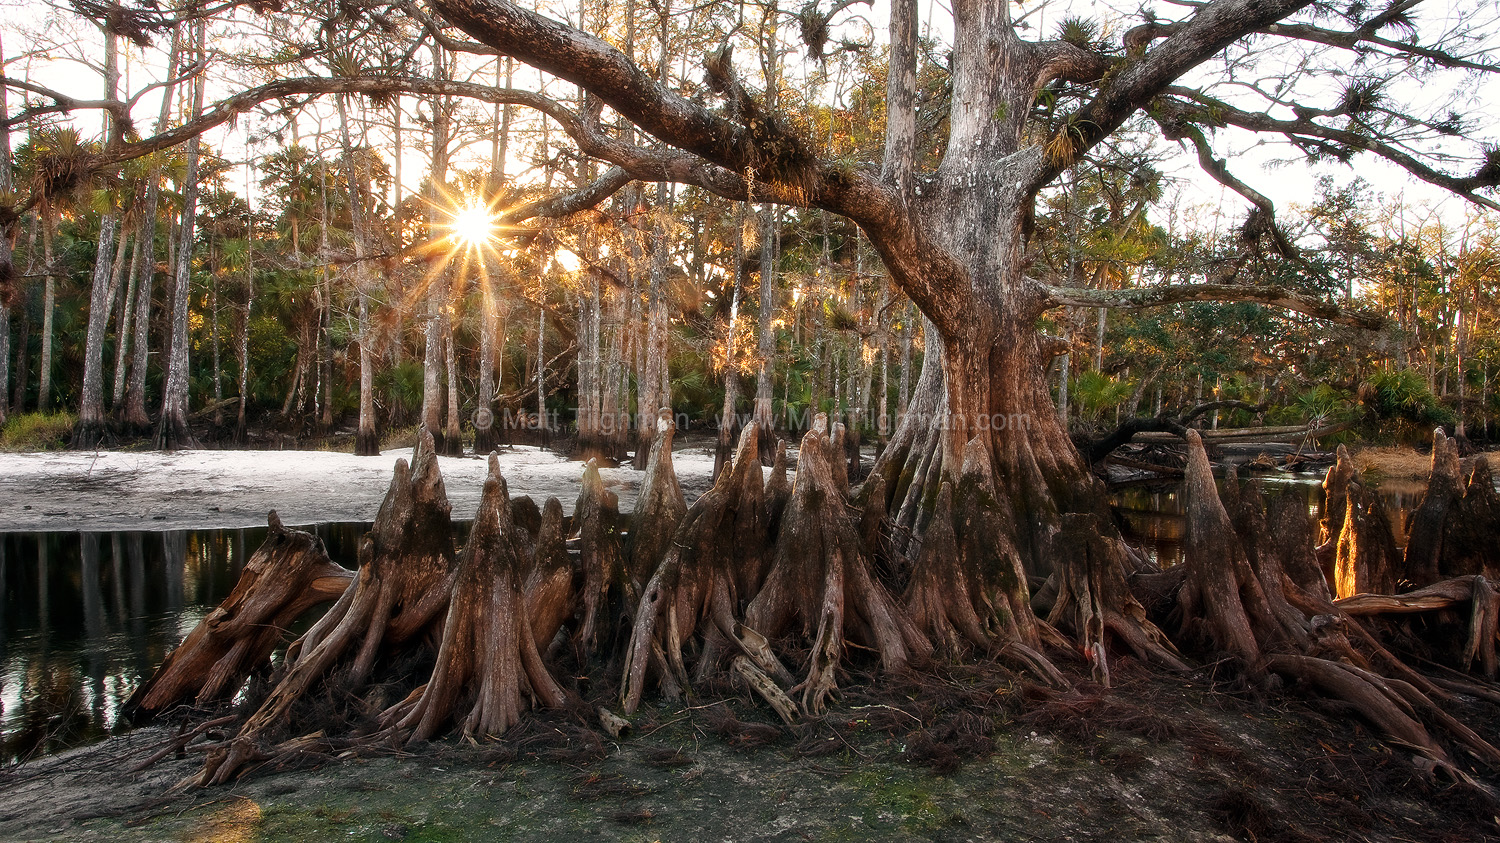 Fine art stock landscape photograph from the Florida cypress swamp along Fisheating Creek, showing the Memorial Tree at sunrise.